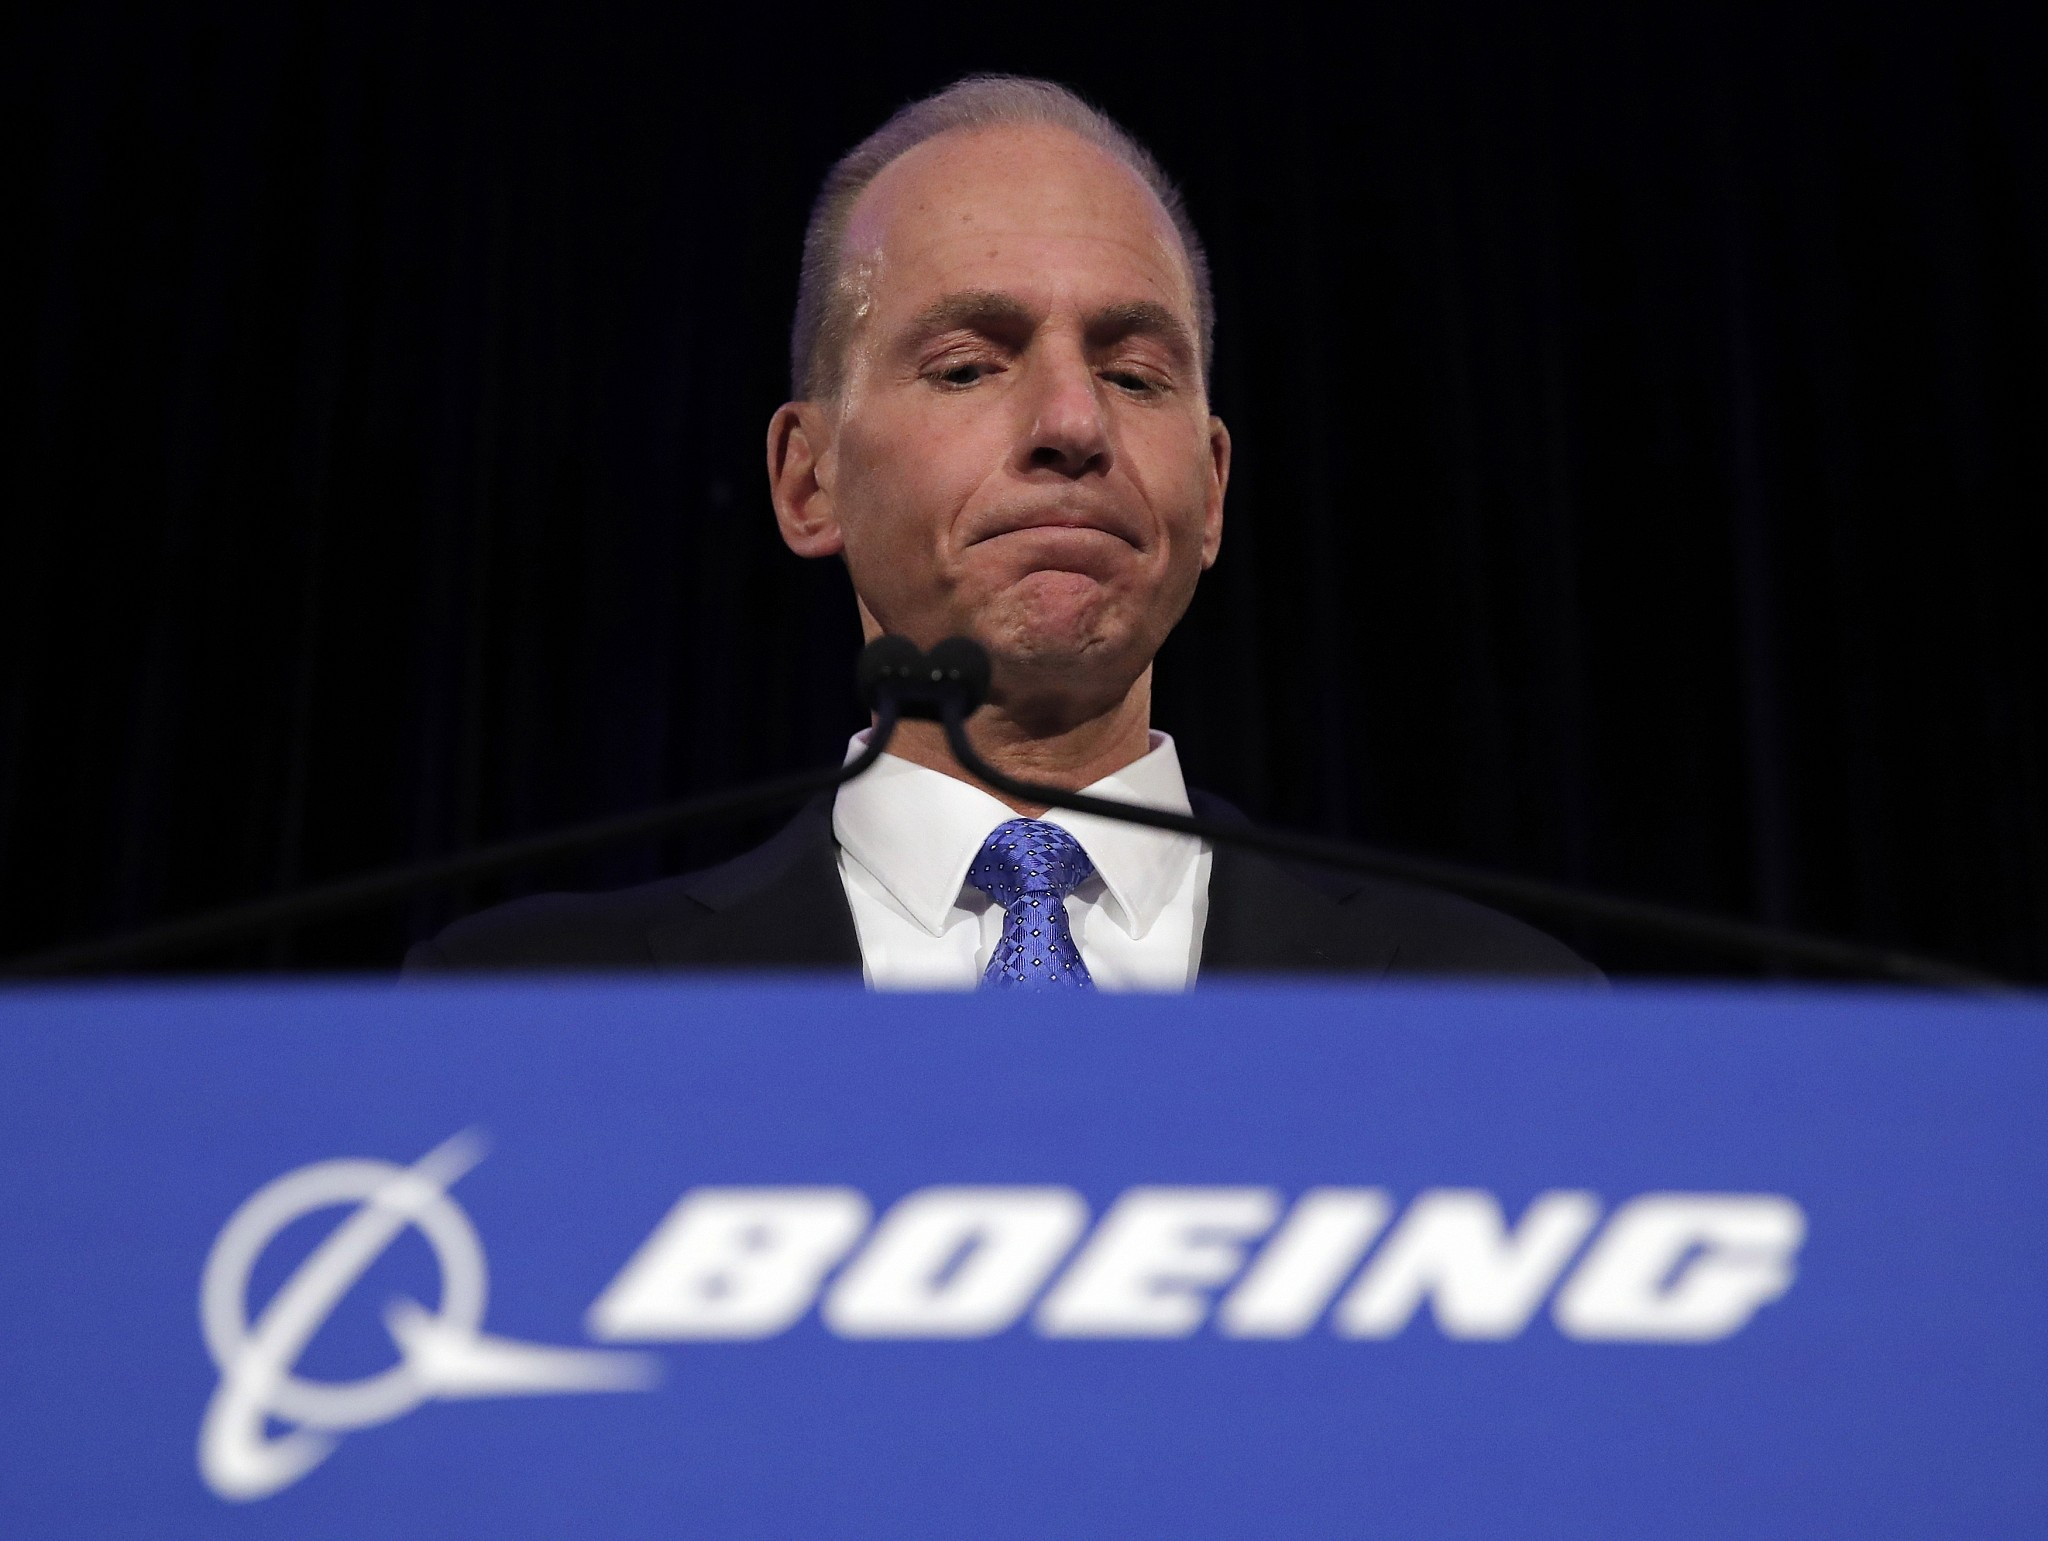 Airbus, in blow to Boeing, to launch new long-range jet